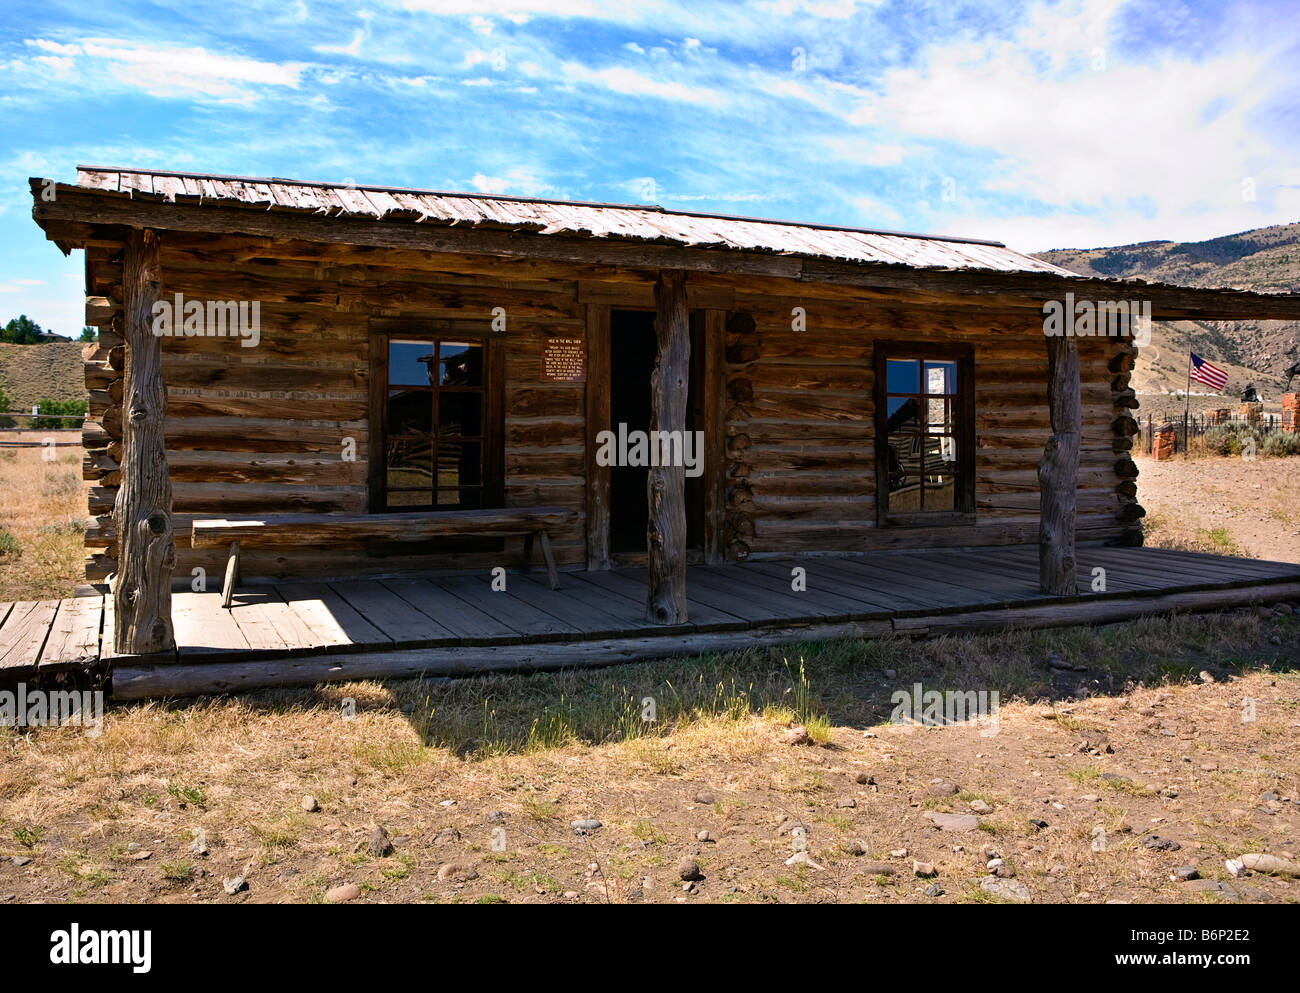 Image Of The Hole In The Wall Cabin In Old Trail Town